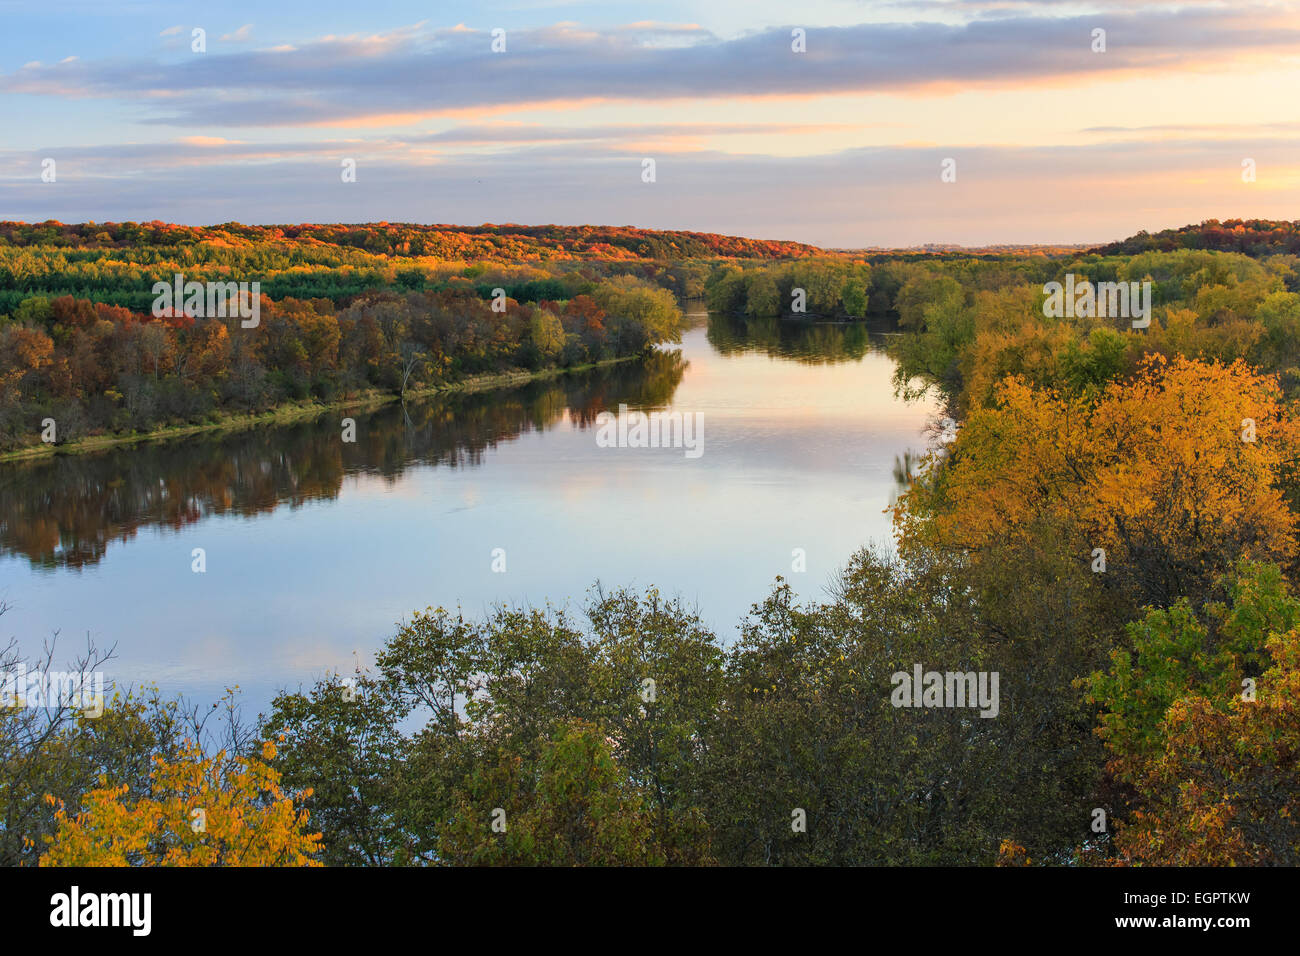 The Rock River in Illinois - Stock Image